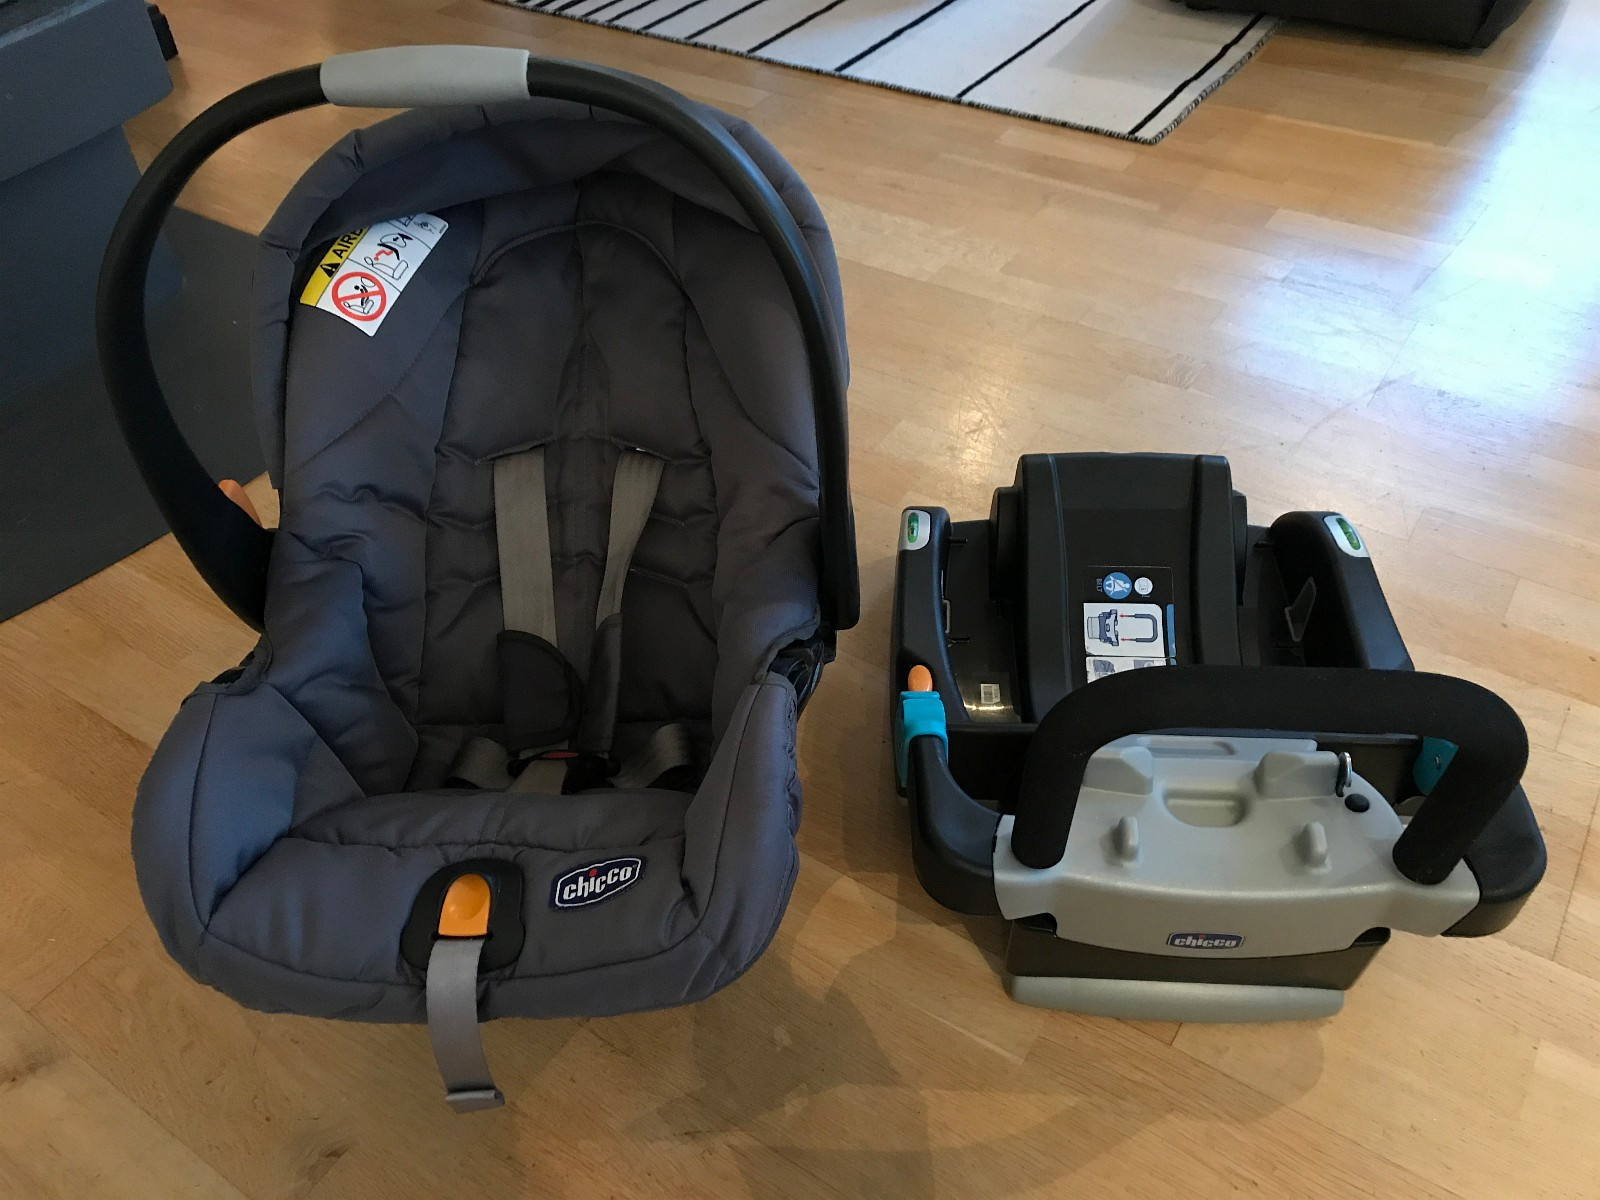 Car Seat CHICCO + Isofix + Stokke Stroller adapter - Oslo  - Car seat Chicco with Isofix and adaptor for stoke stroller!